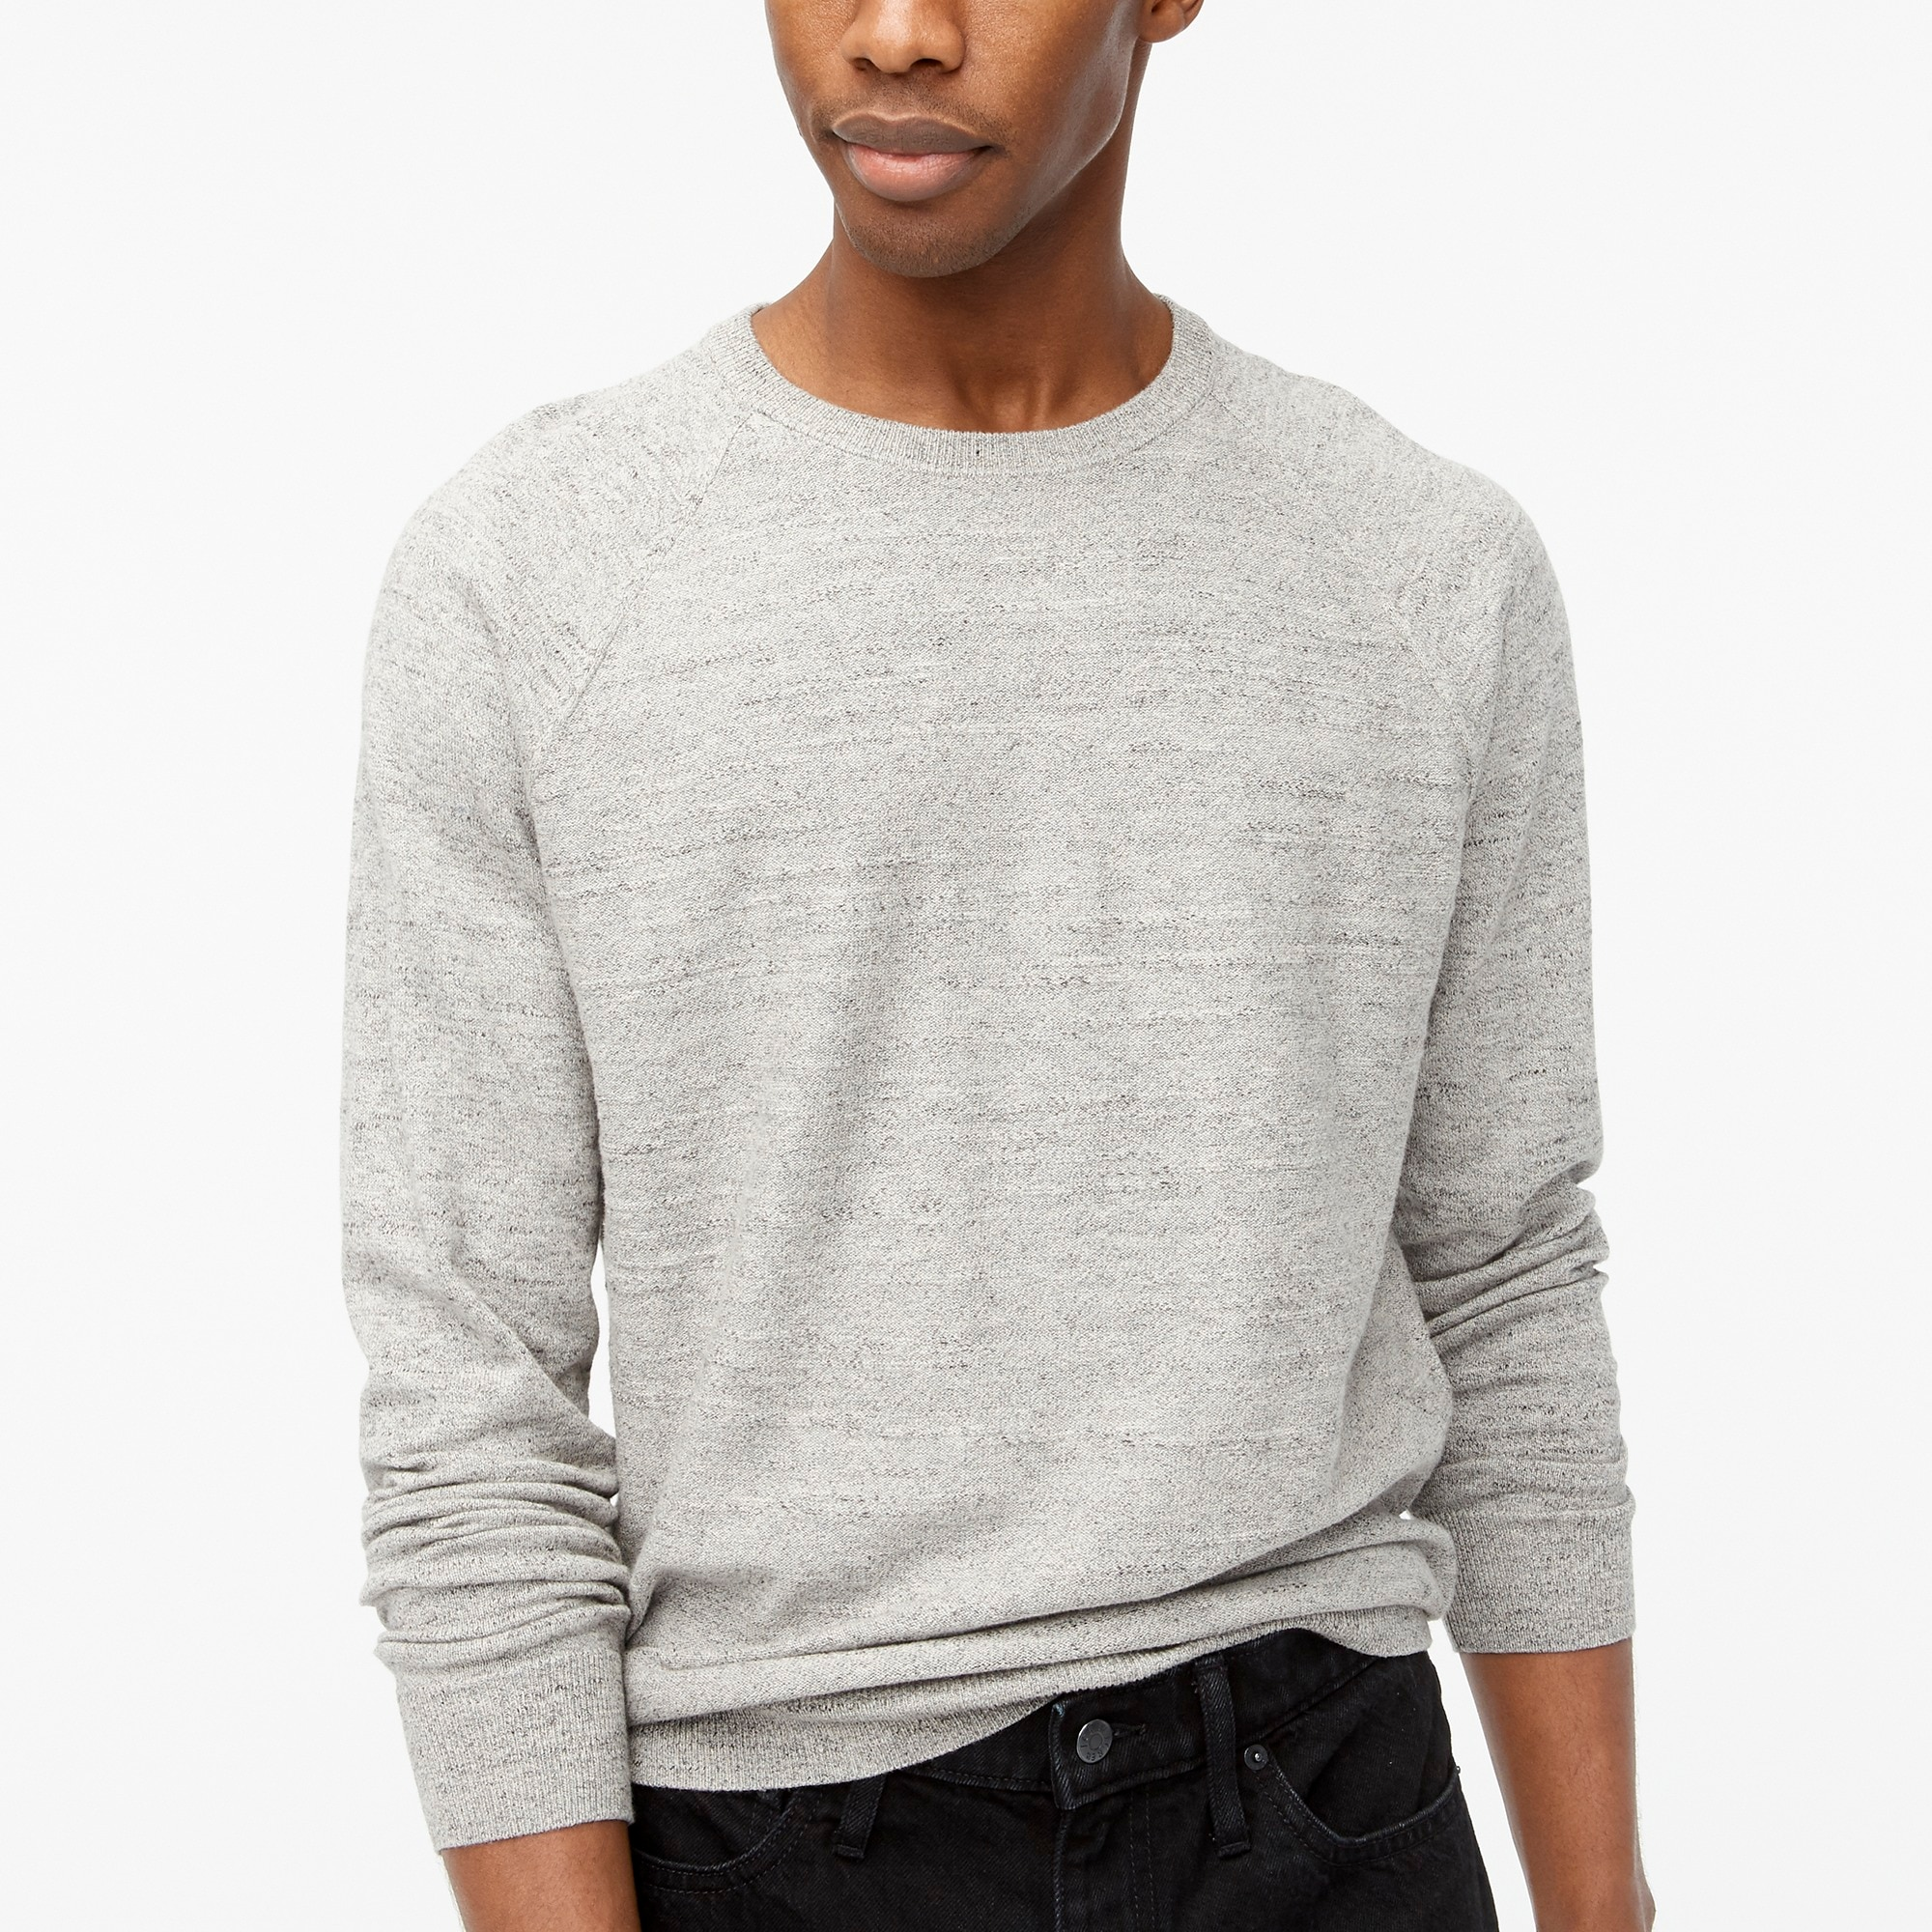 factory mens Textured cotton crewneck sweater